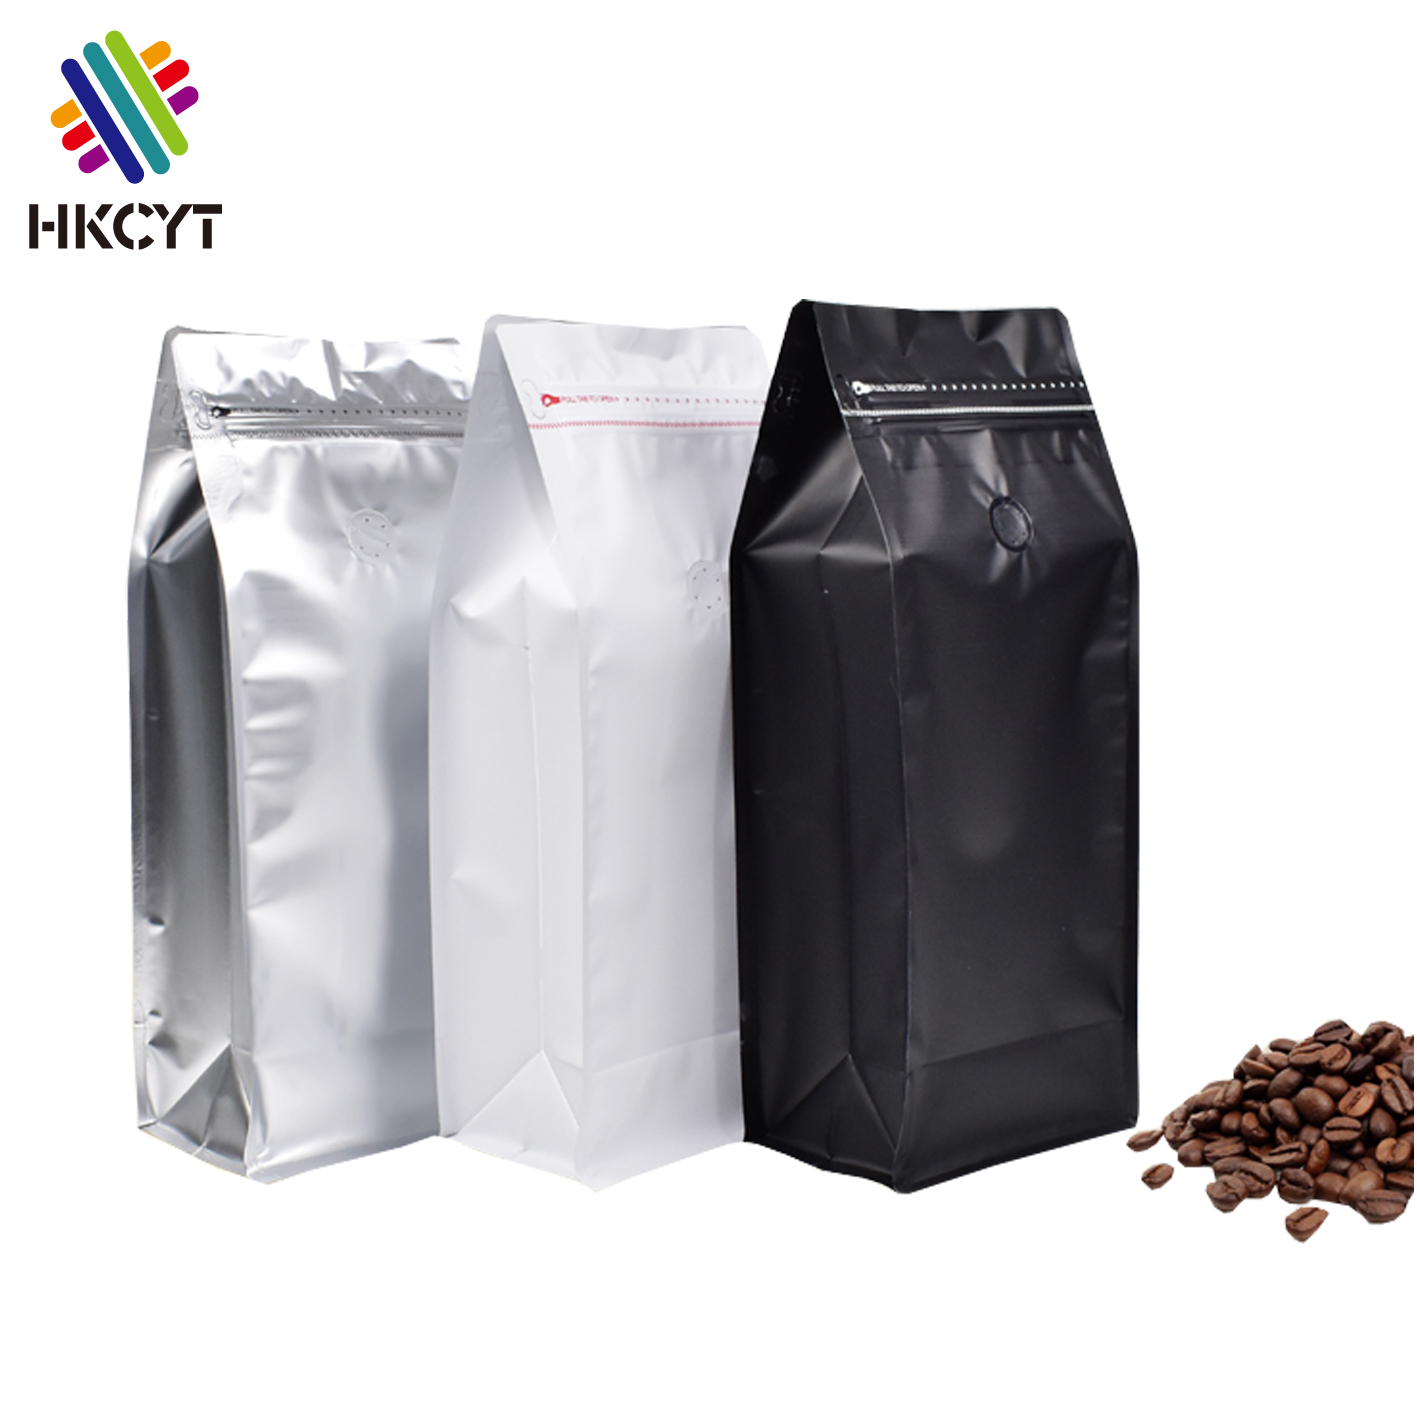 In Stocked Low MOQ white <strong>black</strong> 1kg coffee bag with valve